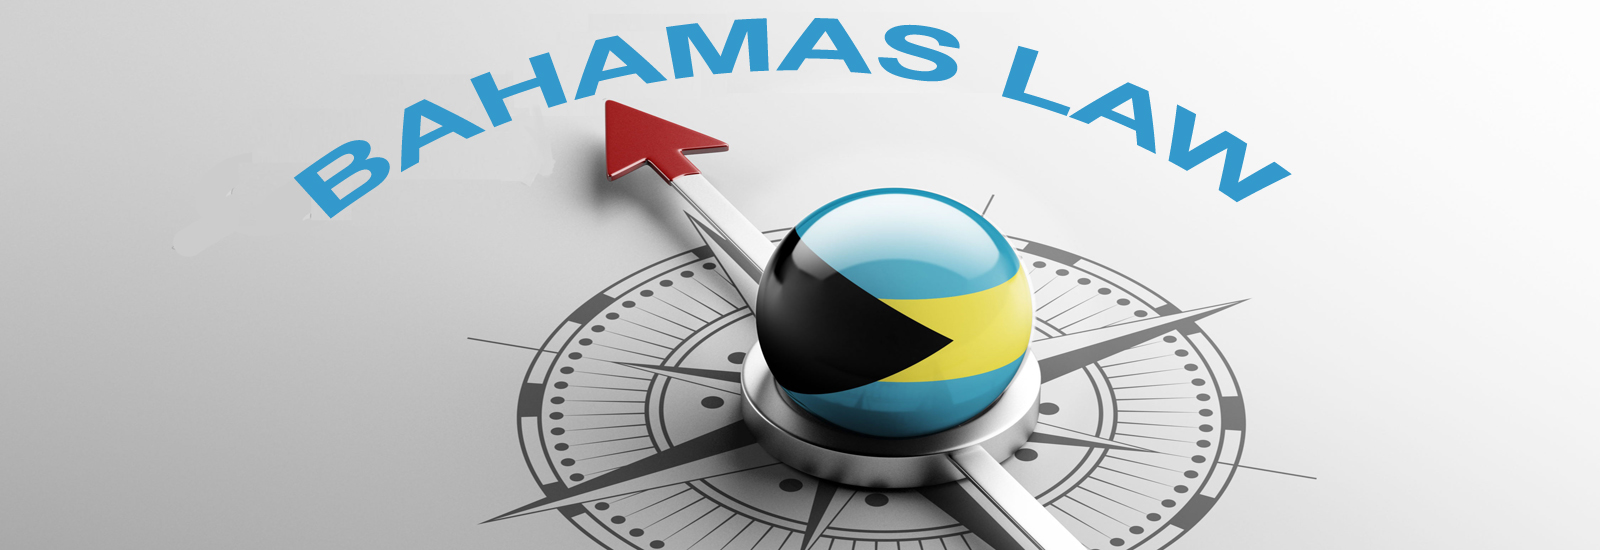 Bahamas High Resolution Coaching Concept